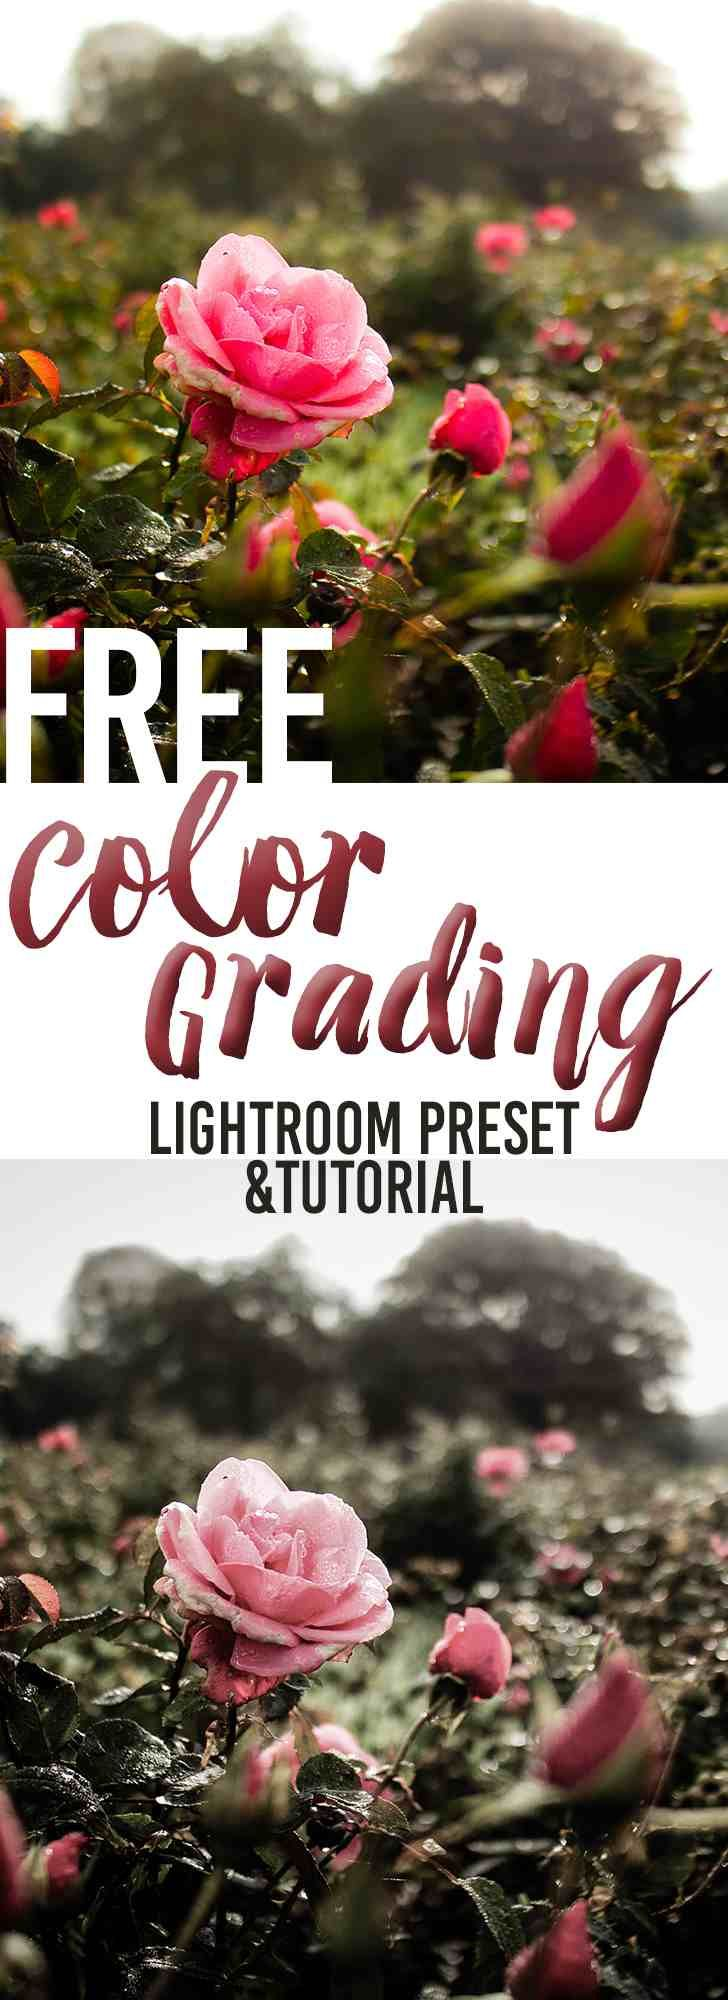 25 best ideas about Color Grading on Pinterest  Cinematography